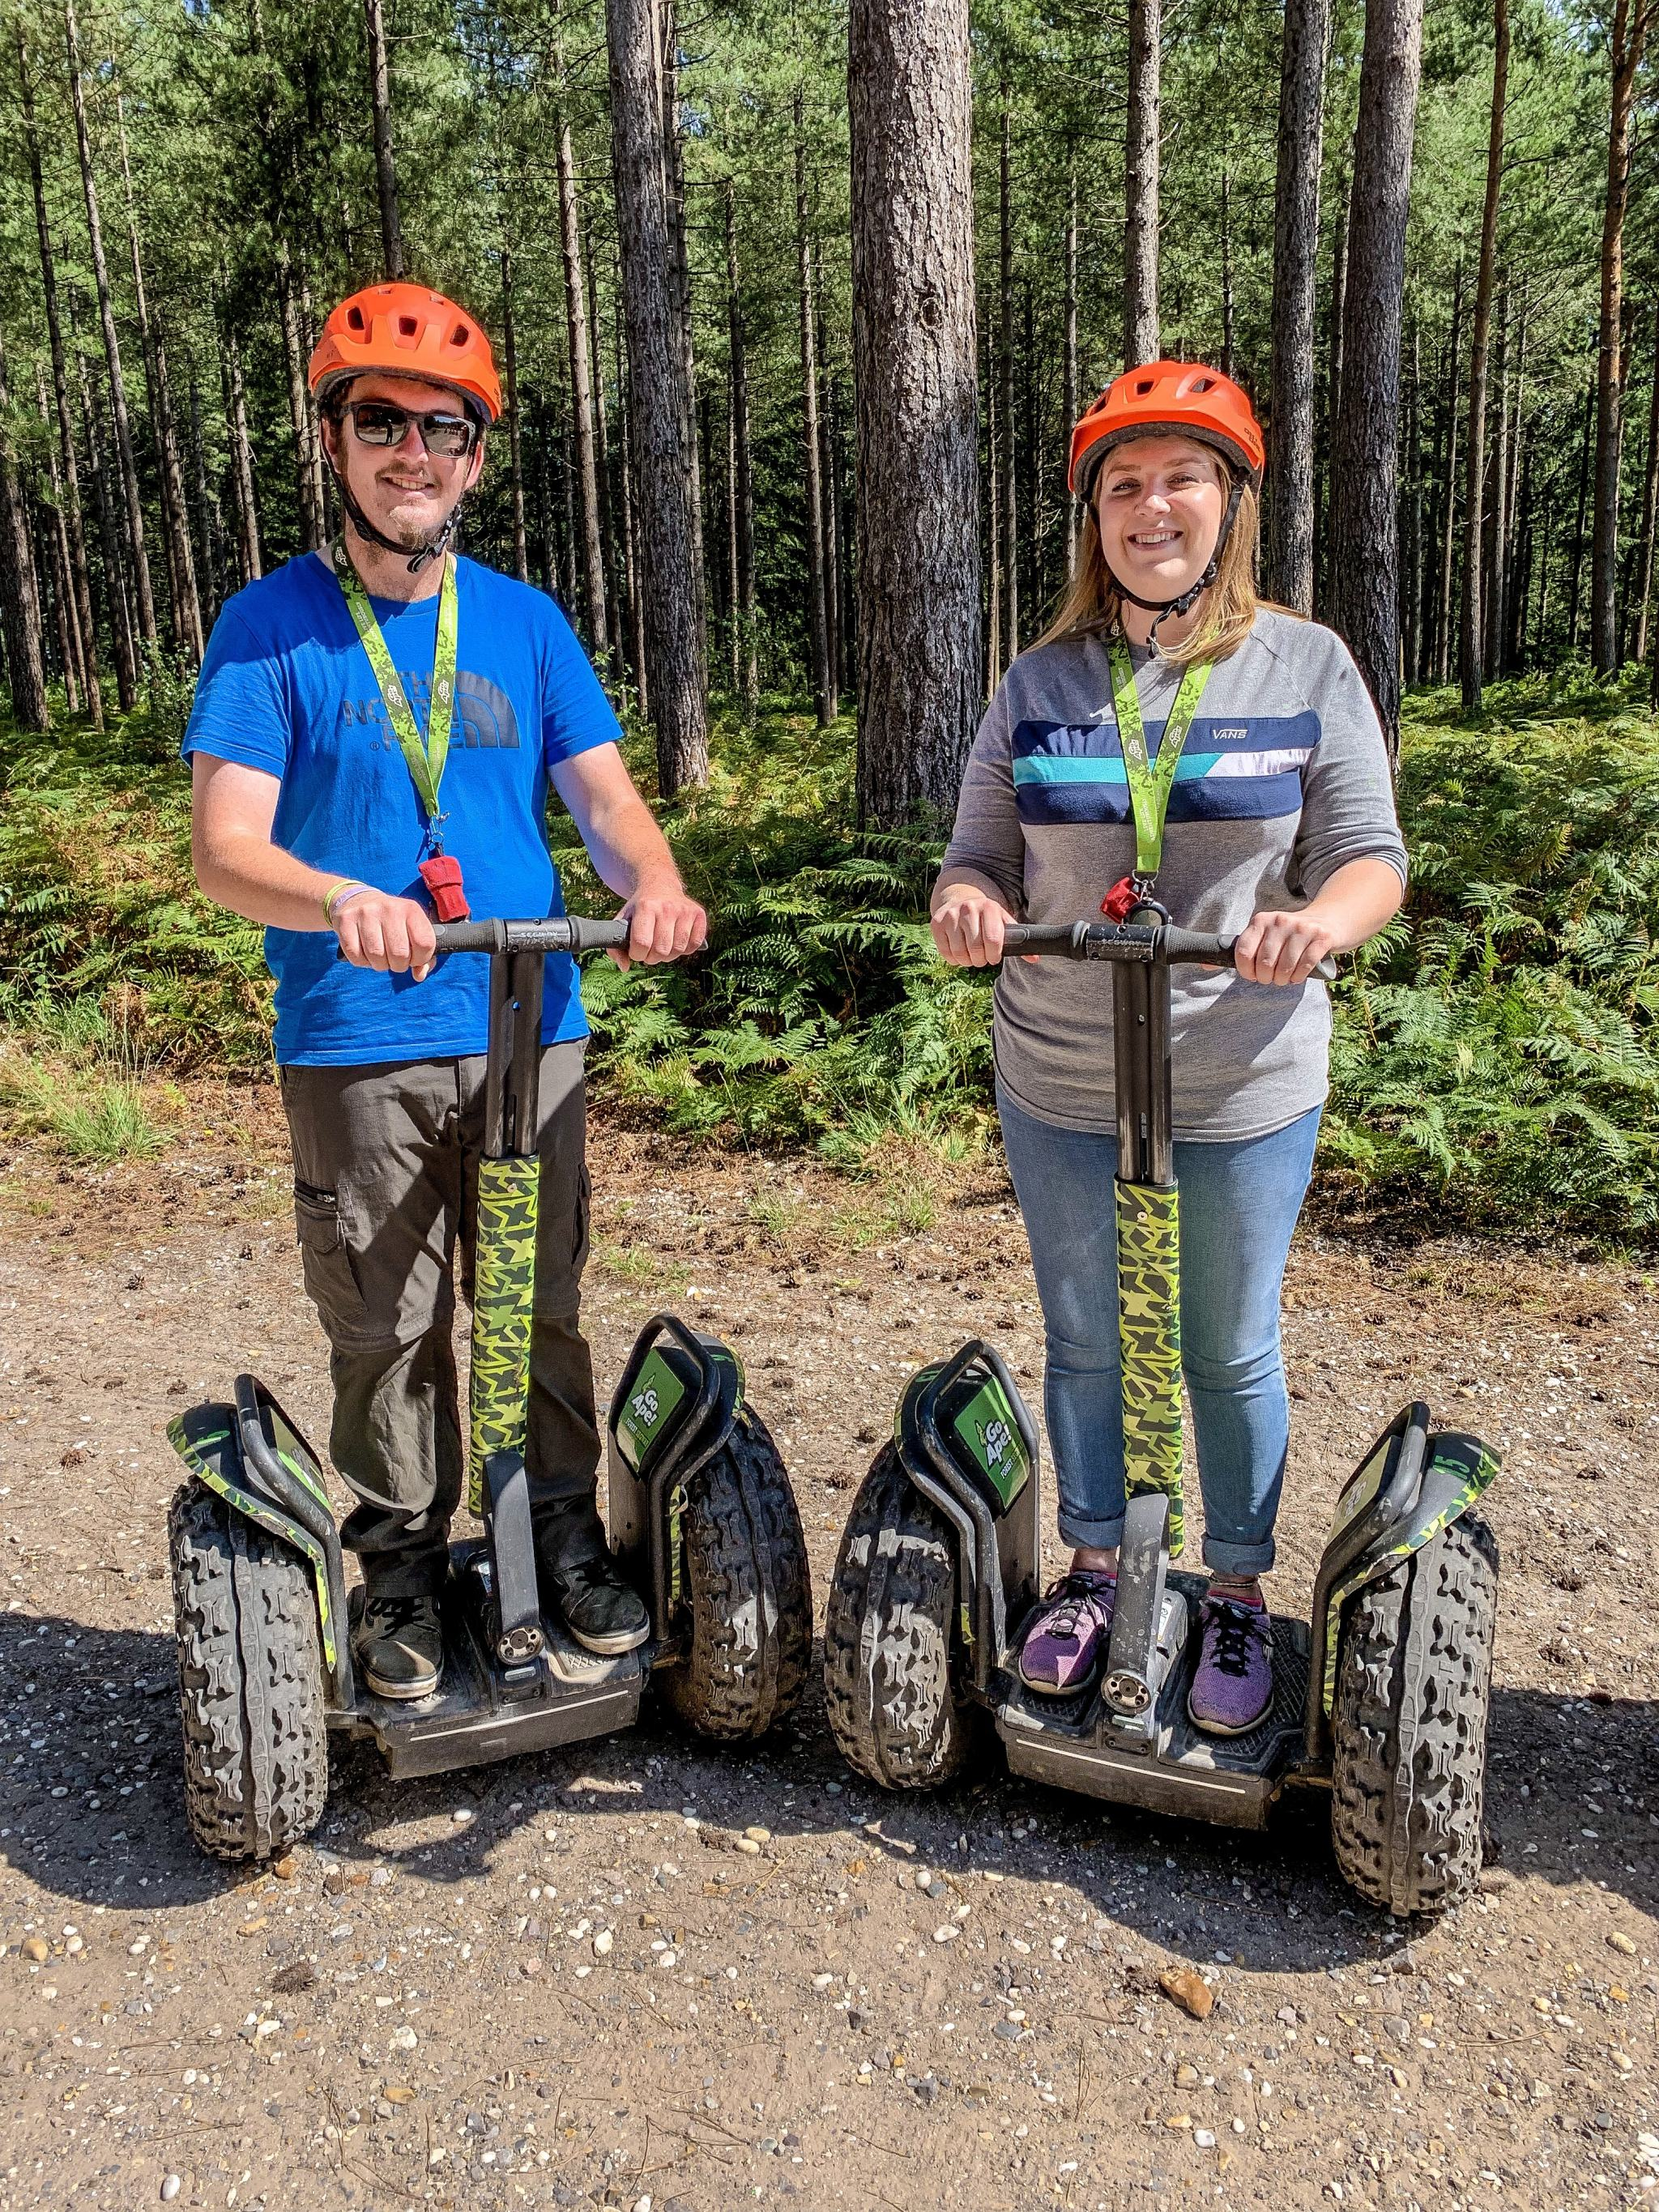 riding segways in the forest at Go Ape Moors Valley